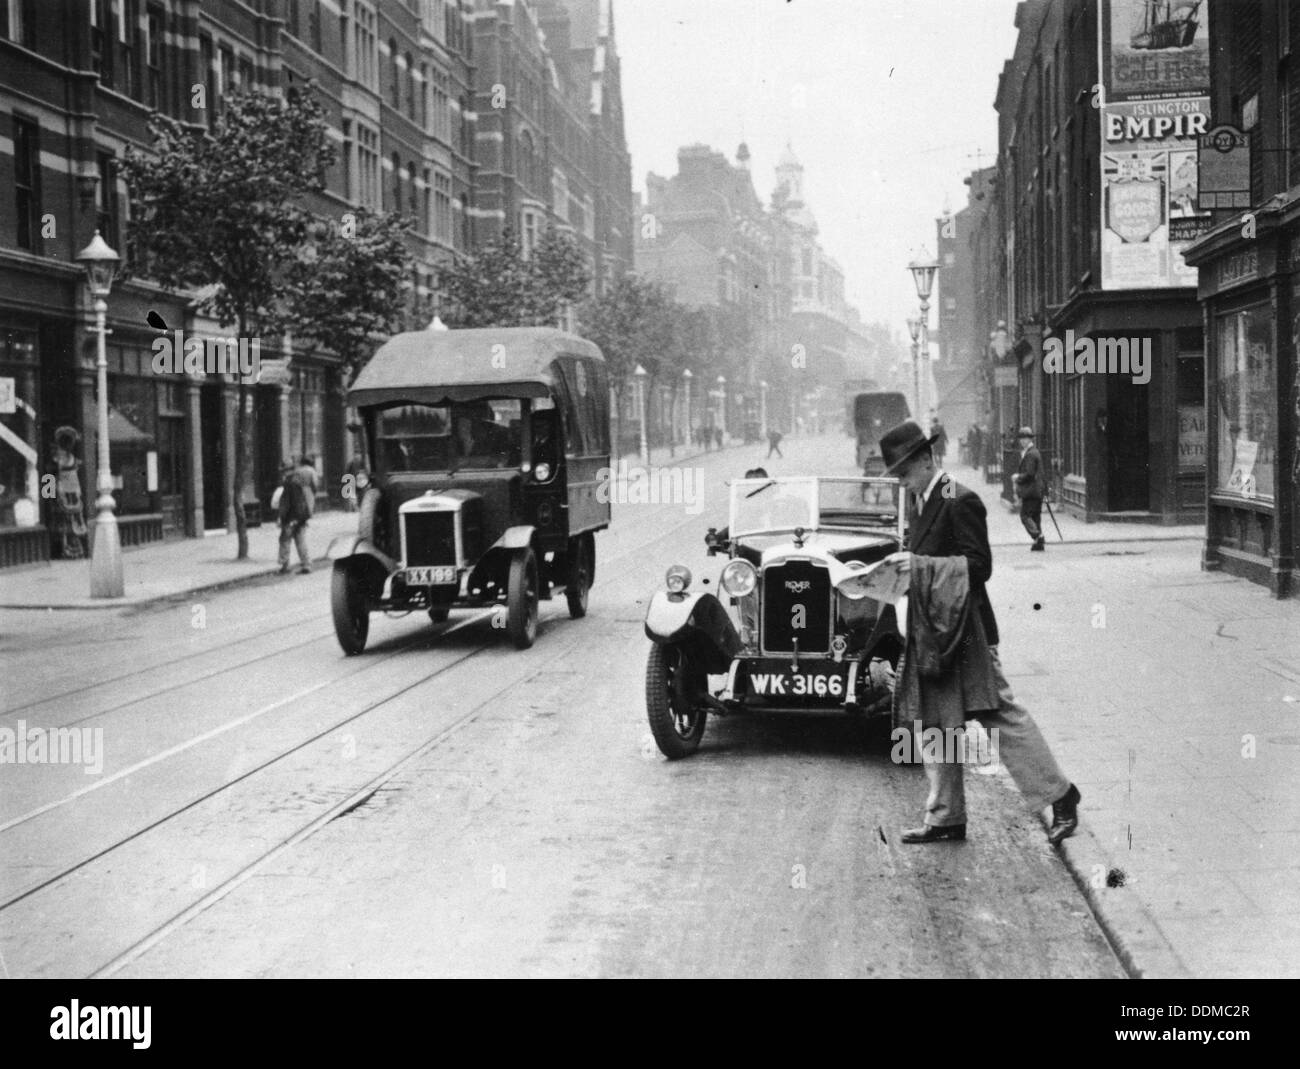 A Rover 1928 10/25 HP sports car parked in a London street, 1931. - Stock Image